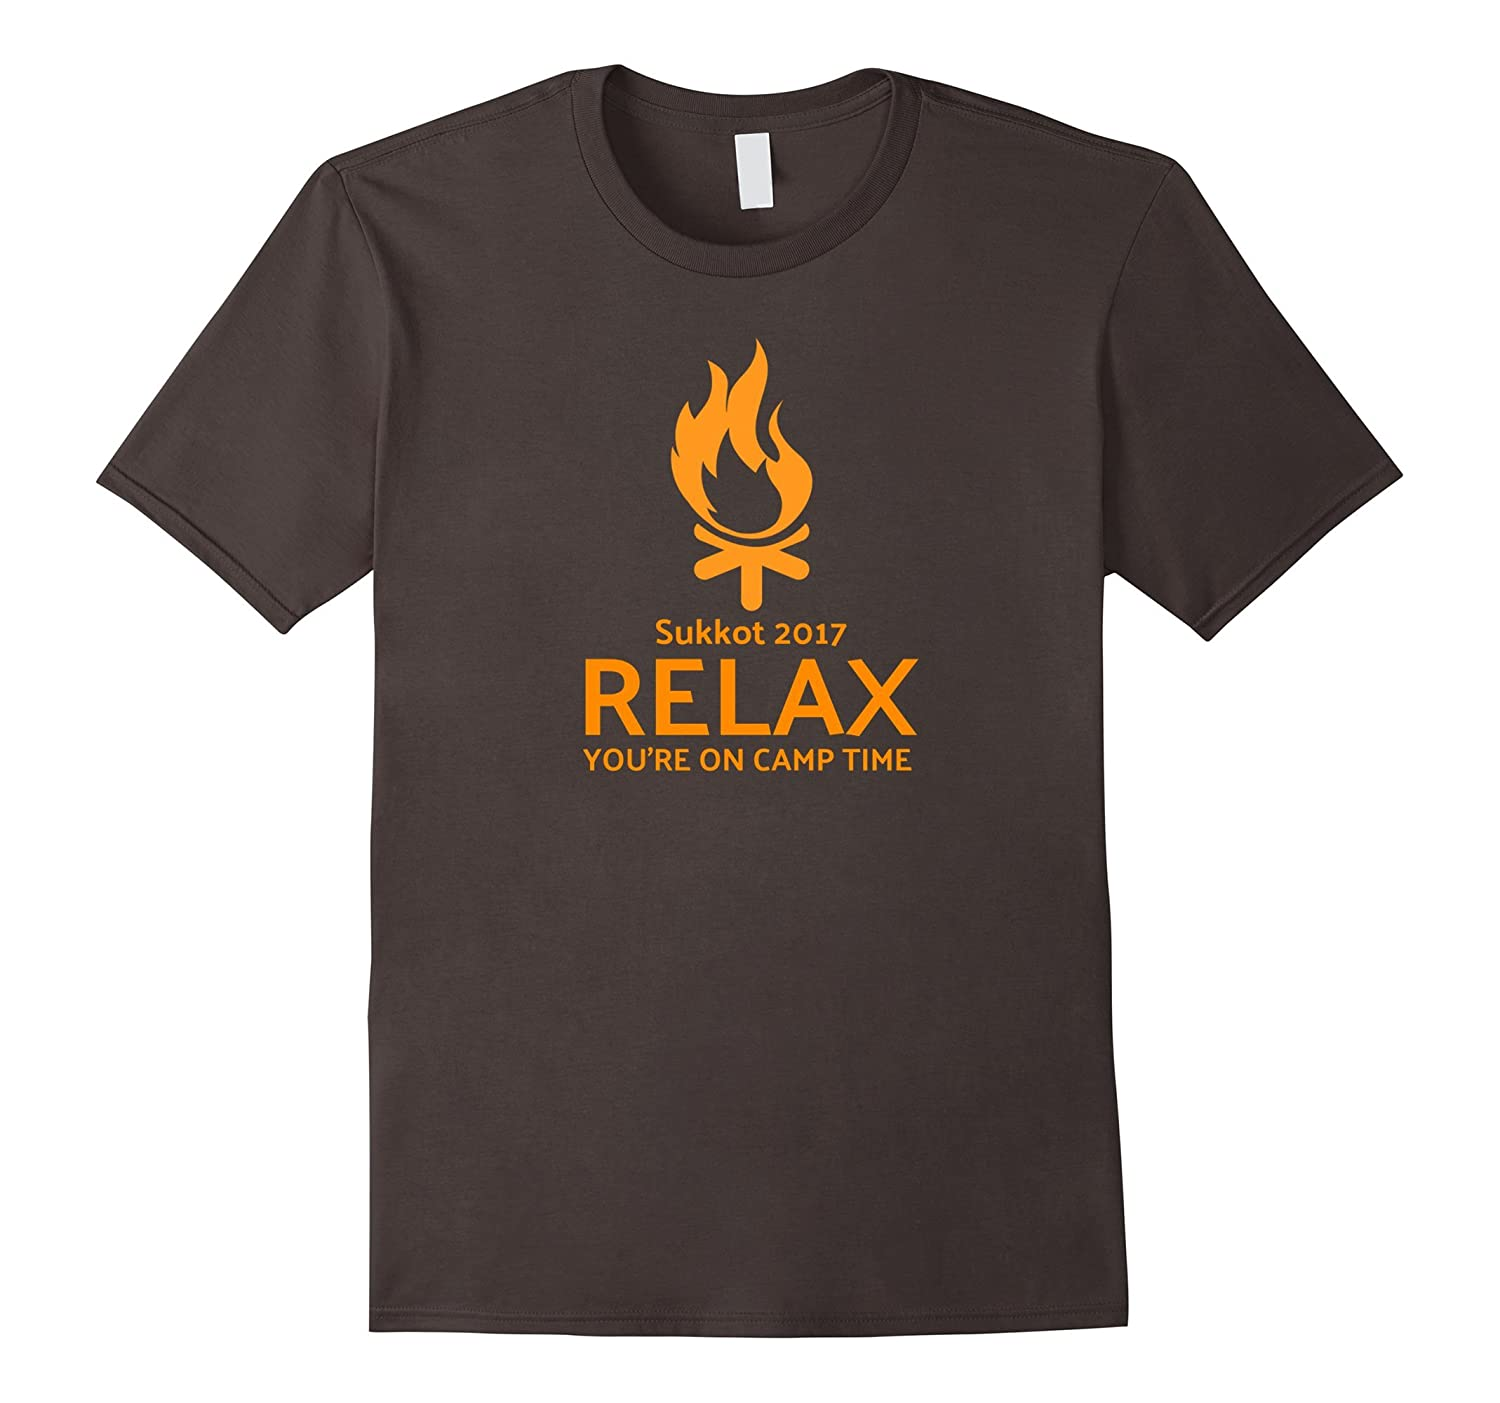 Sukkot 2017 Relax You're on Camp Time T-shirt-T-Shirt